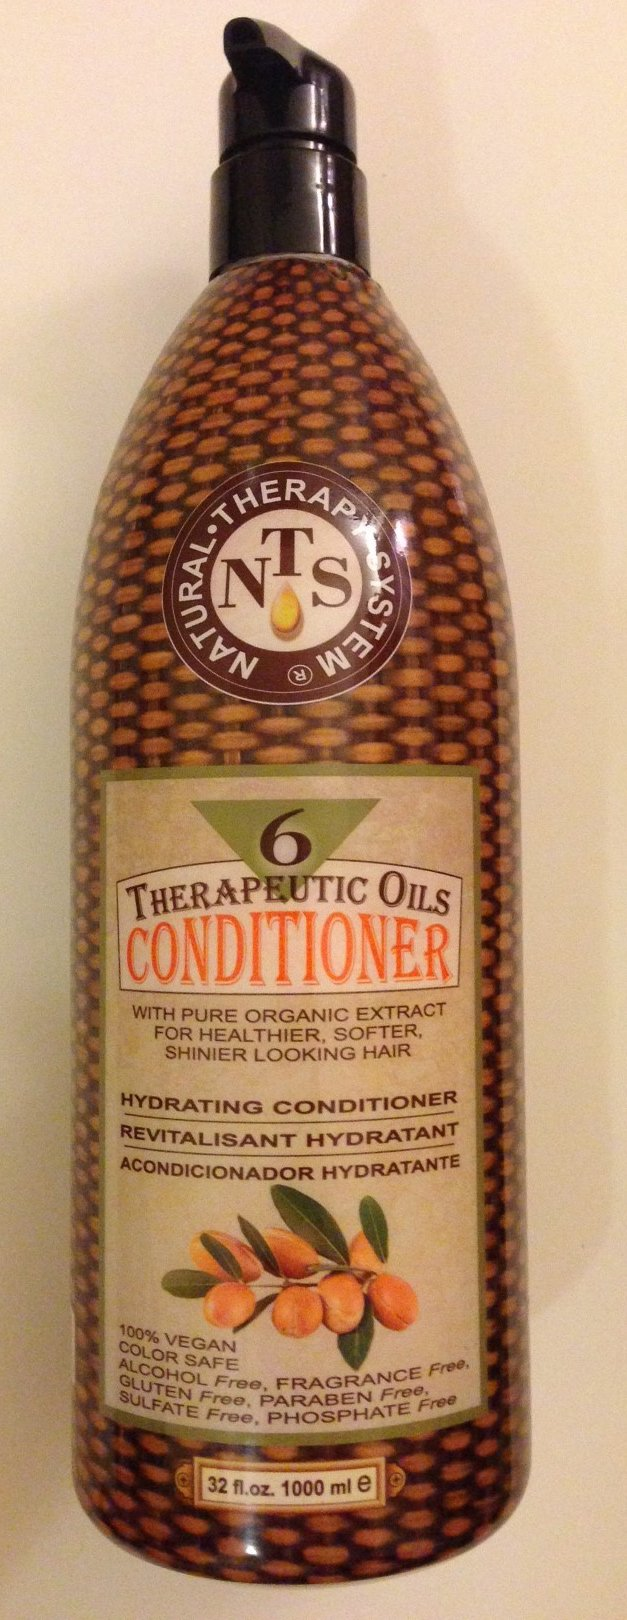 Natural Therapy System Six Therapeutic Oils Conditioner 32 Oz